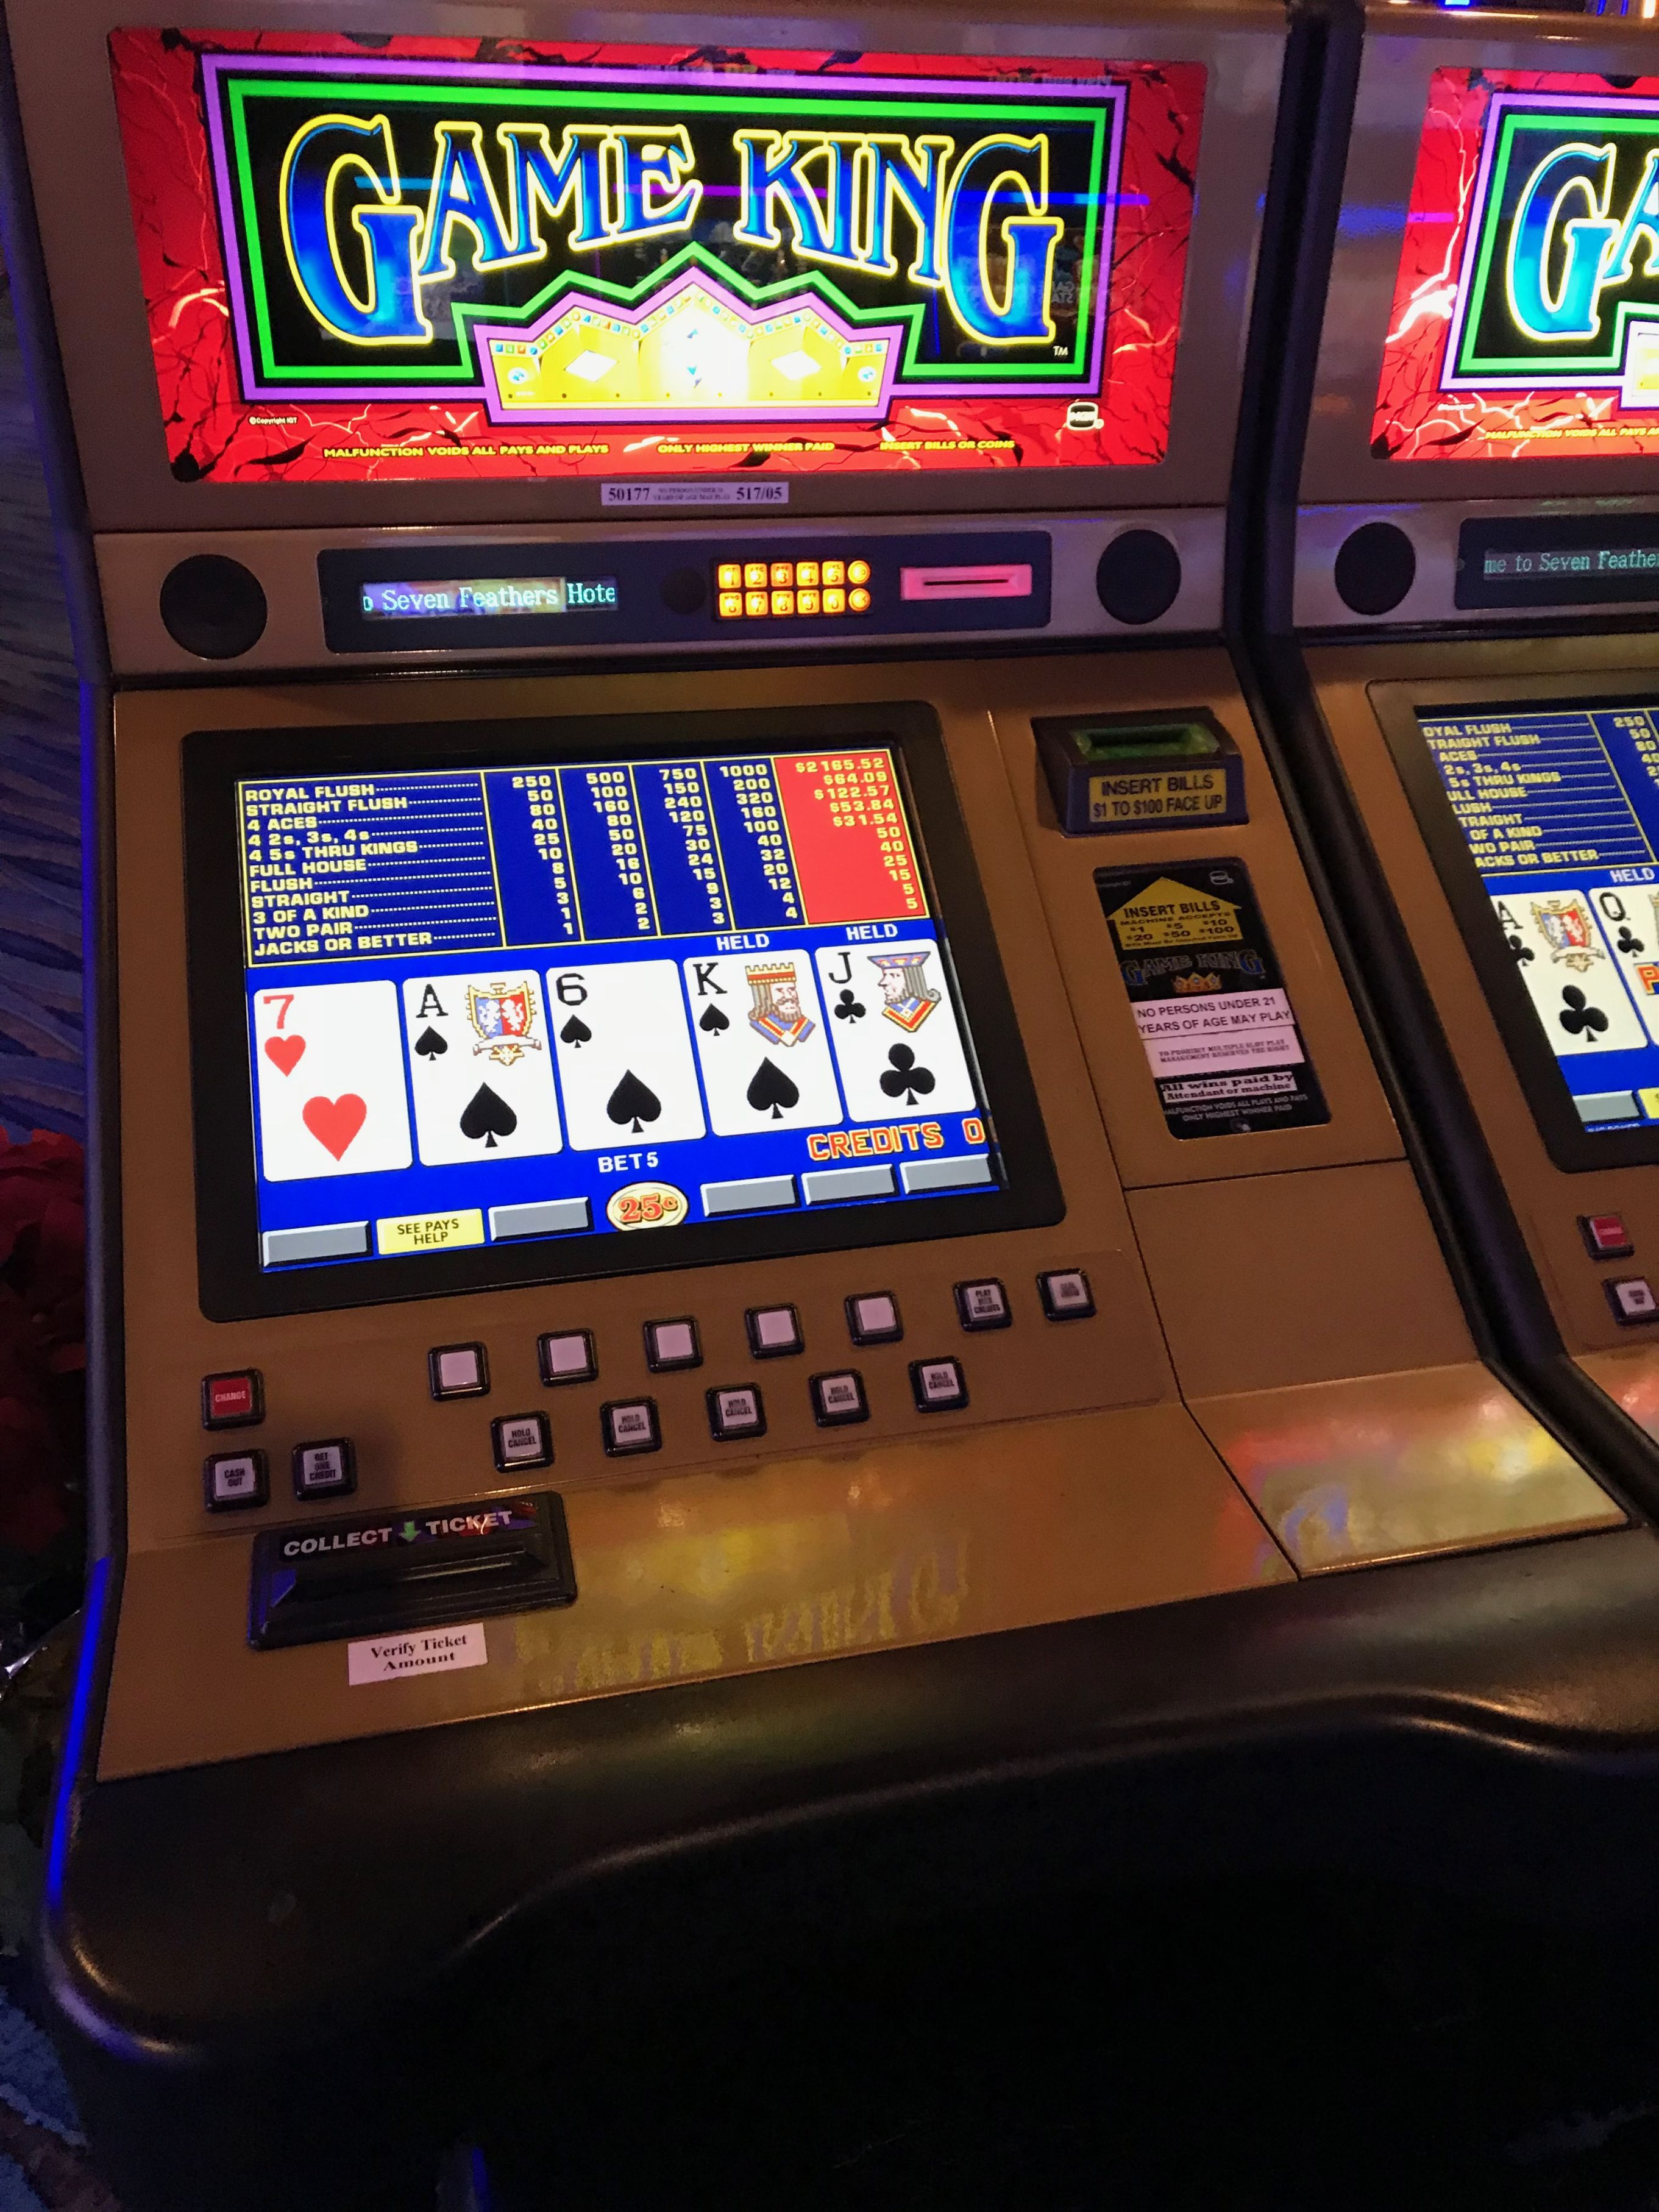 Best tips for winning on slot machines at home